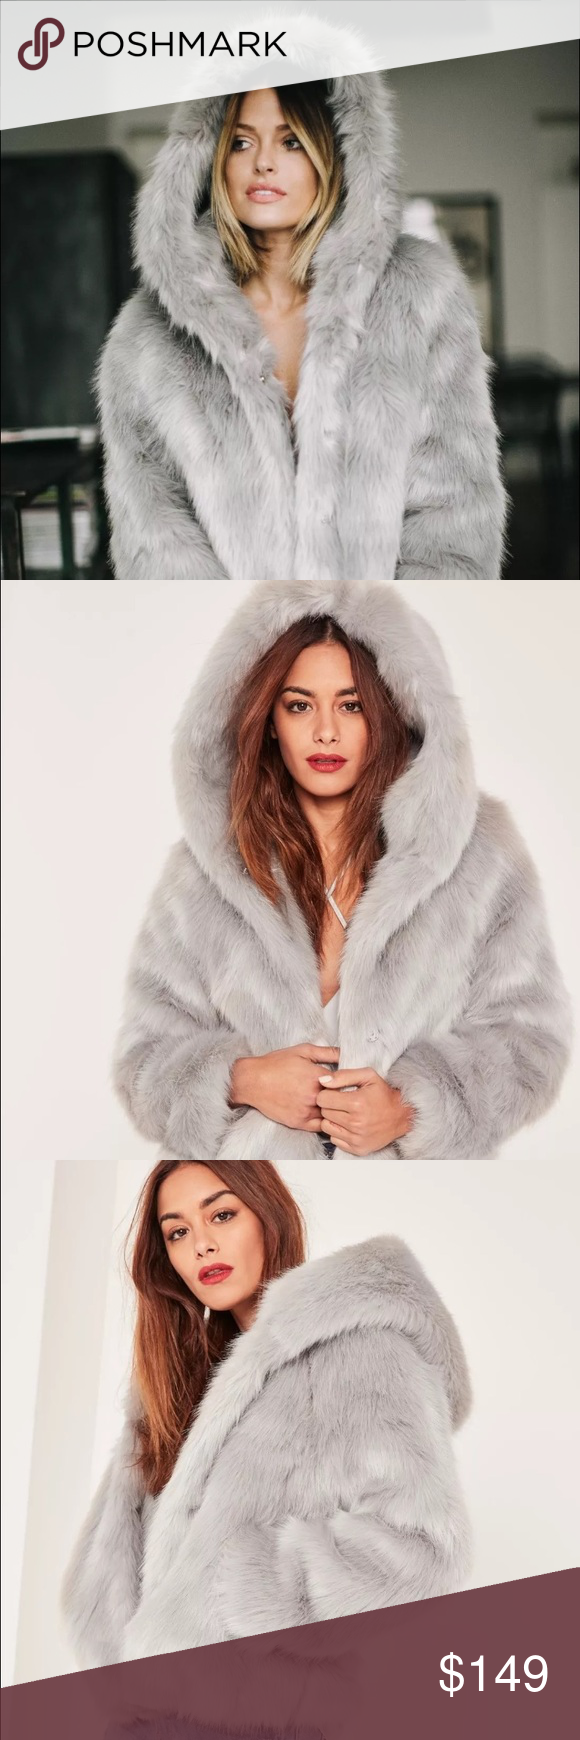 aa08f43ee7 Missguided x Caroline Receveur faux fur grey coat MISSGUIDED X CAROLINE  RECEVEUR - GREY HOODED FAUX FUR COAT US SIZE 0 NEW WITH TAGS.